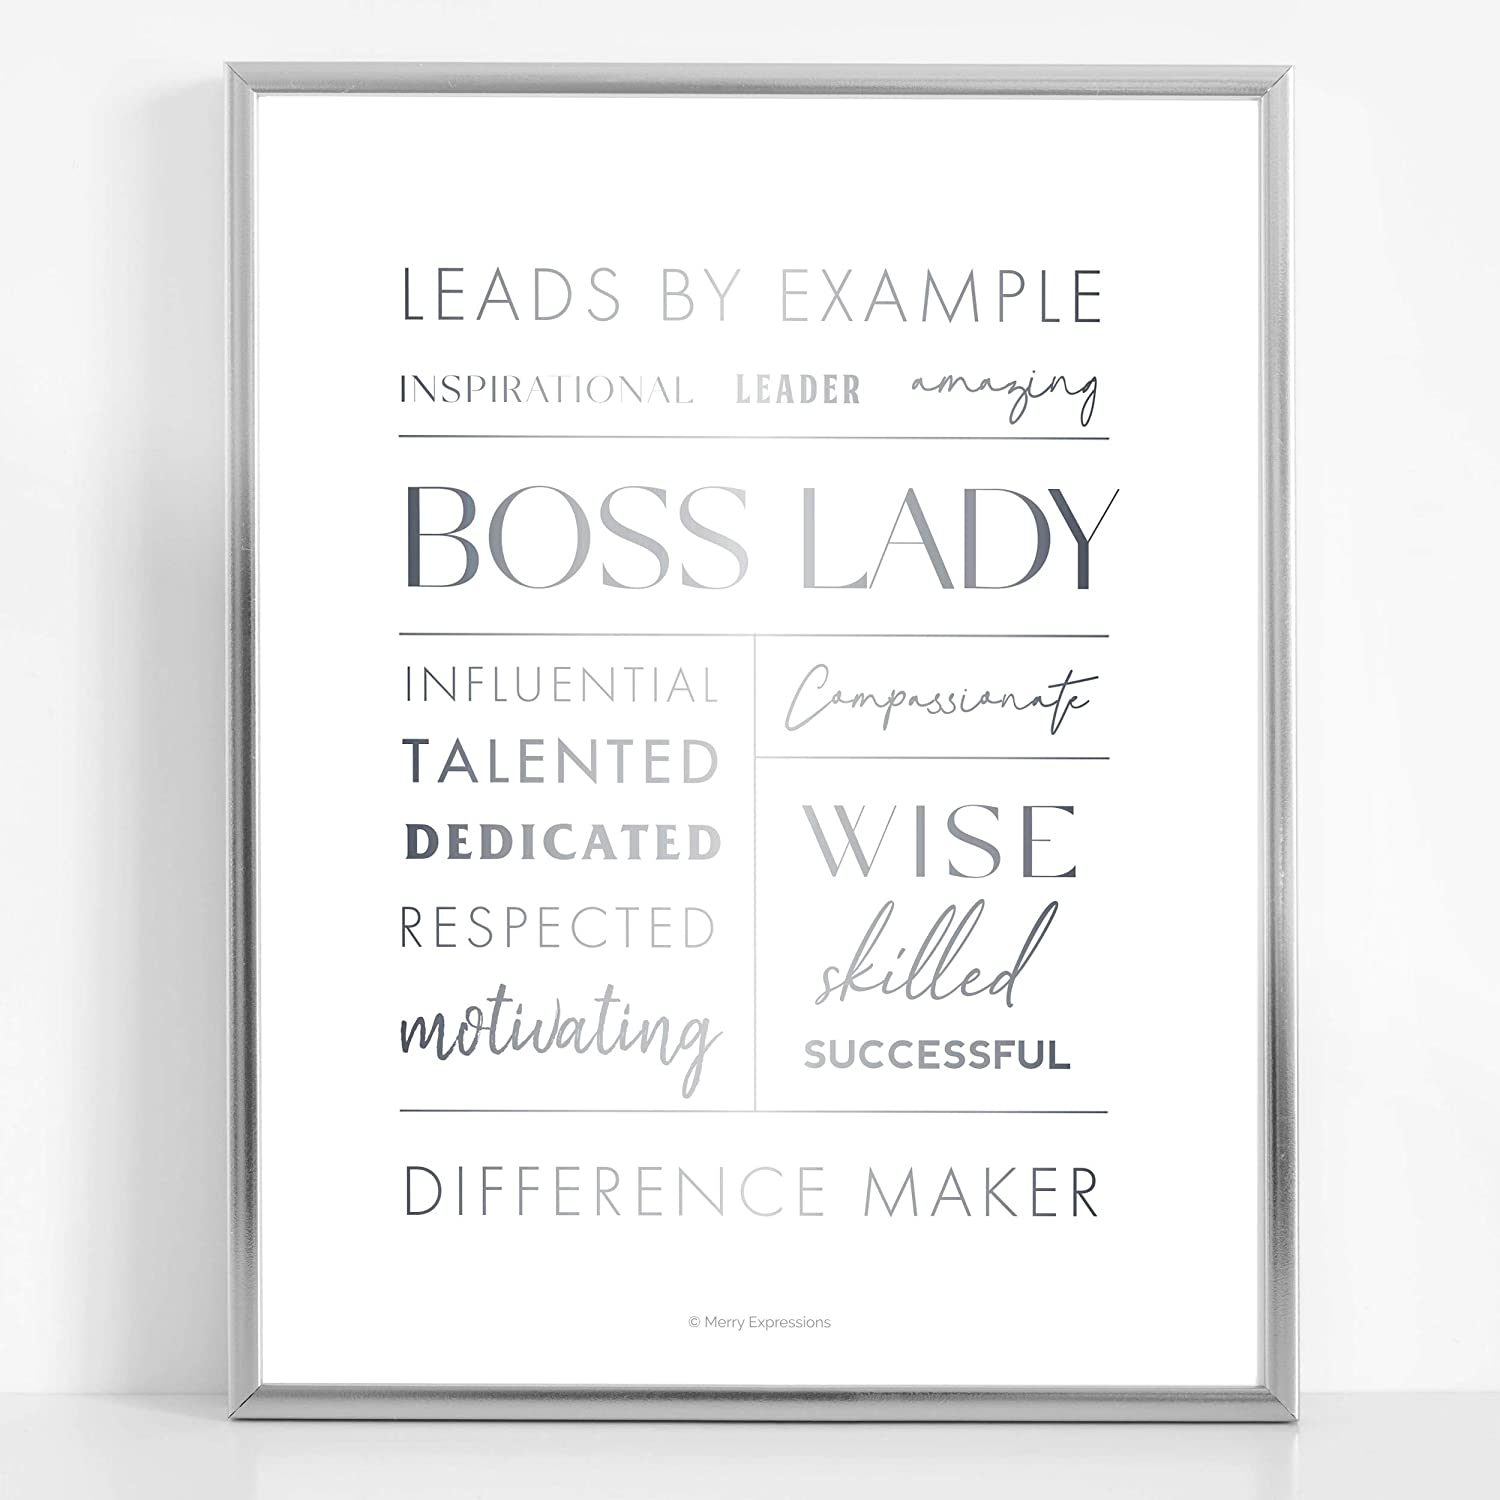 Boss Lady Desk and Wall Art with Aluminum Frame - Boss Lady Office Decor, Boss Lady Gift with Boss Lady Quote by Merry Expressions (Silver, 7